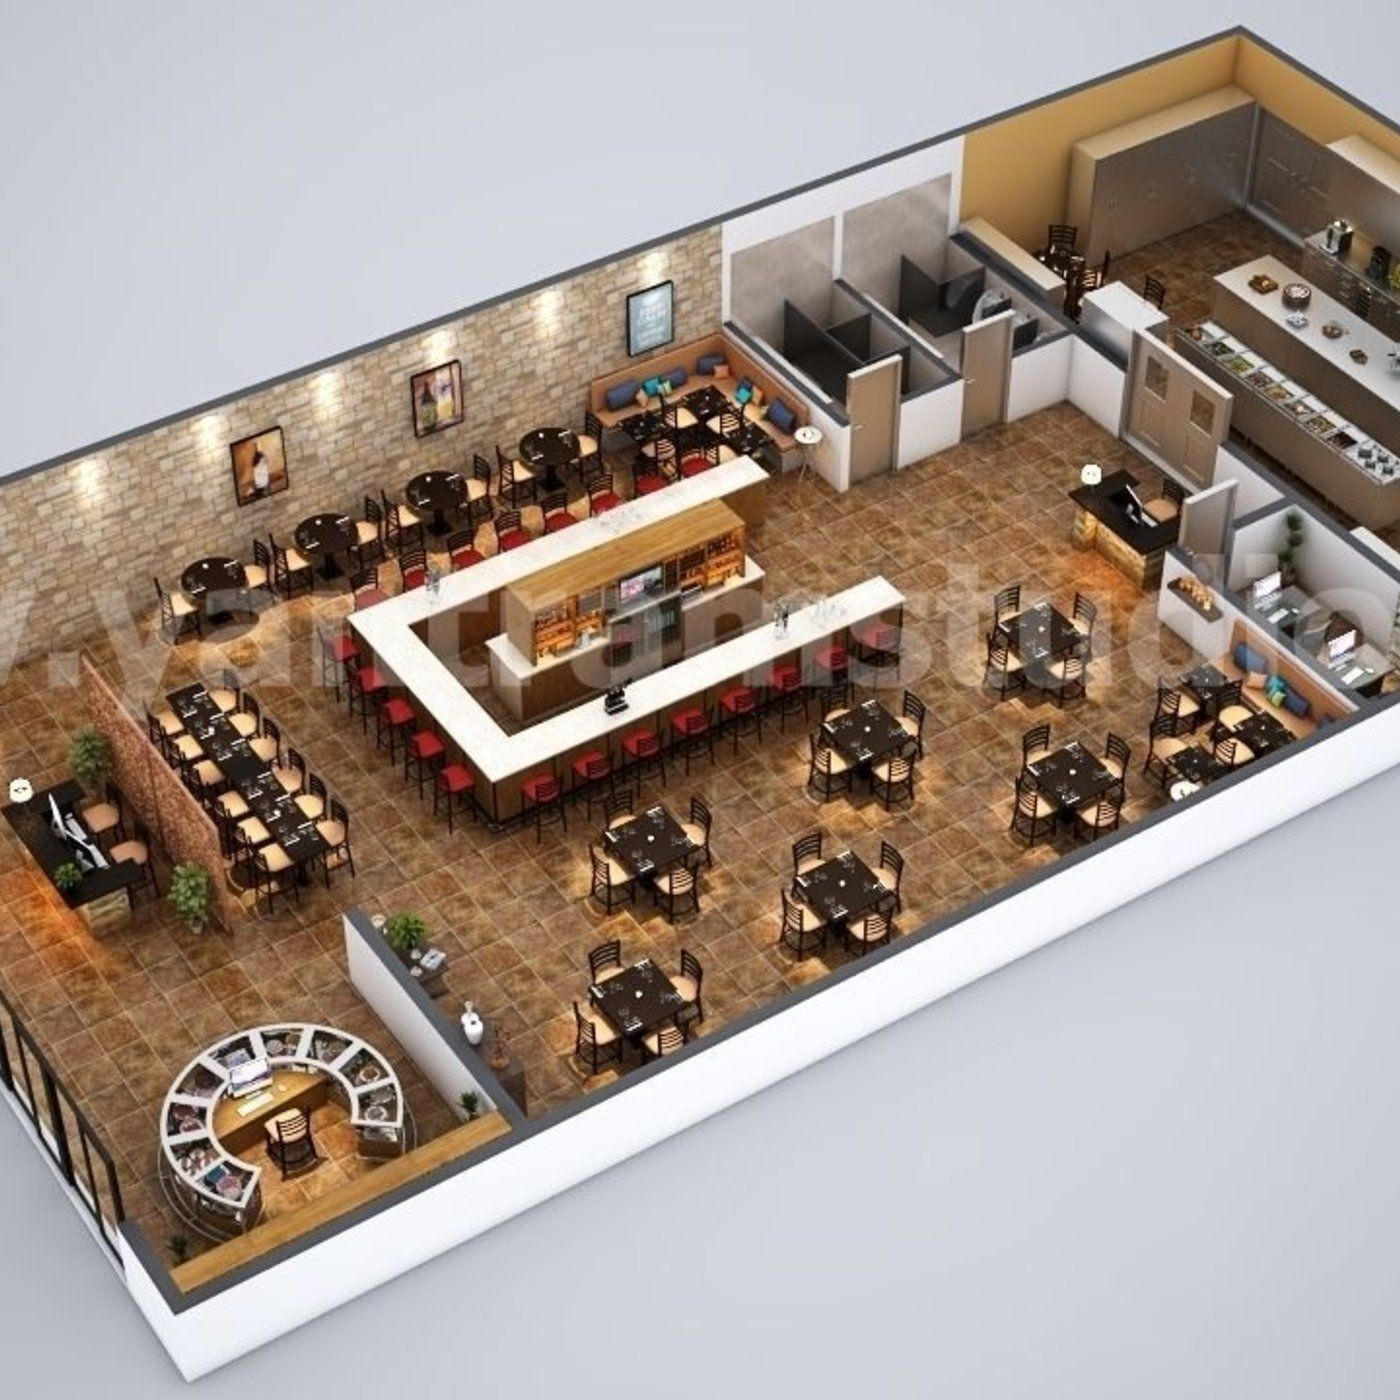 Fully Modern Bar 3D Floor Plan Design Ideas By Yantram architectural planing panies Cape Town South Africa Galleries